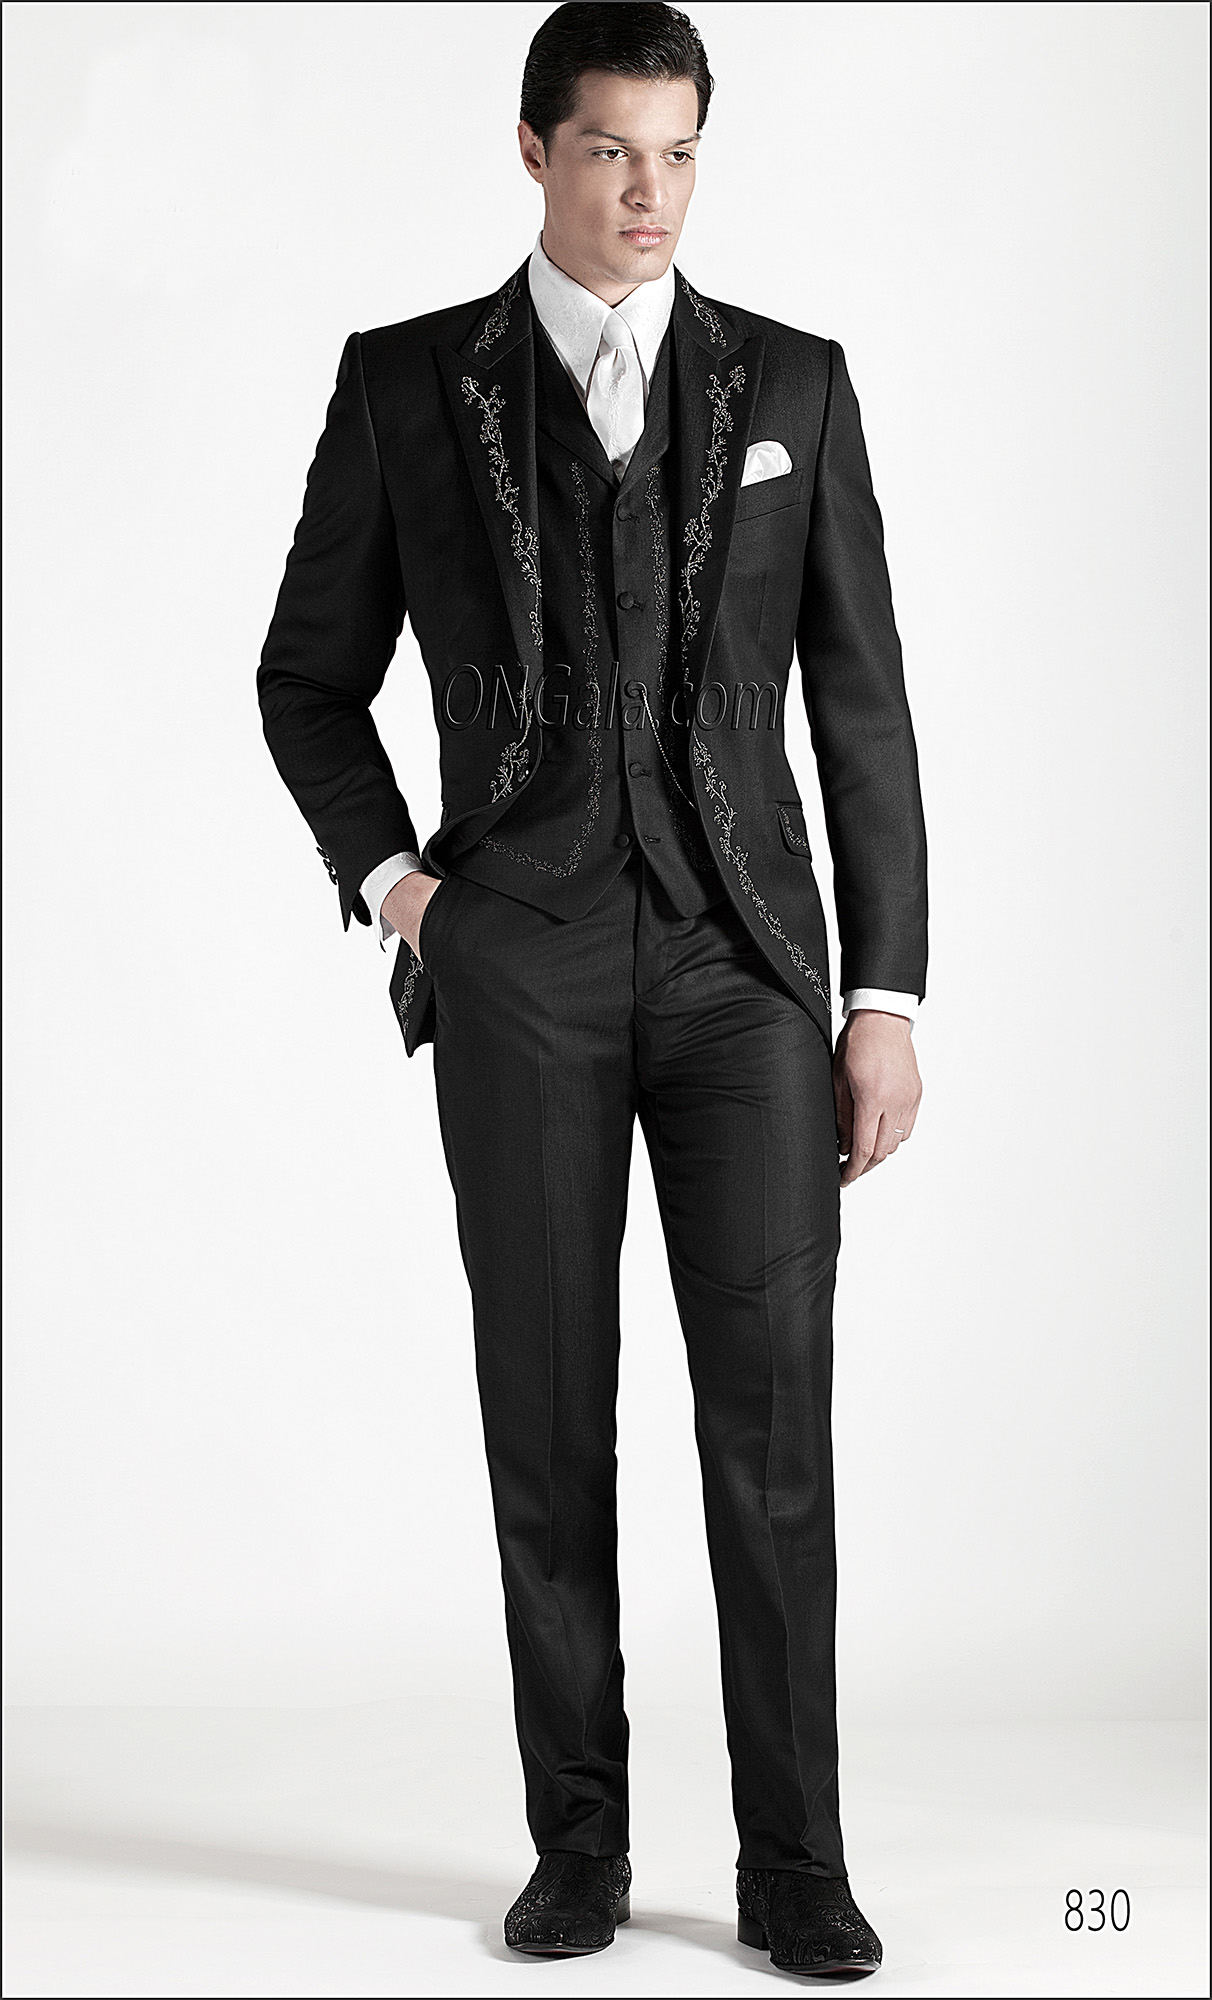 Black Wedding Suits for groom with Embroidery